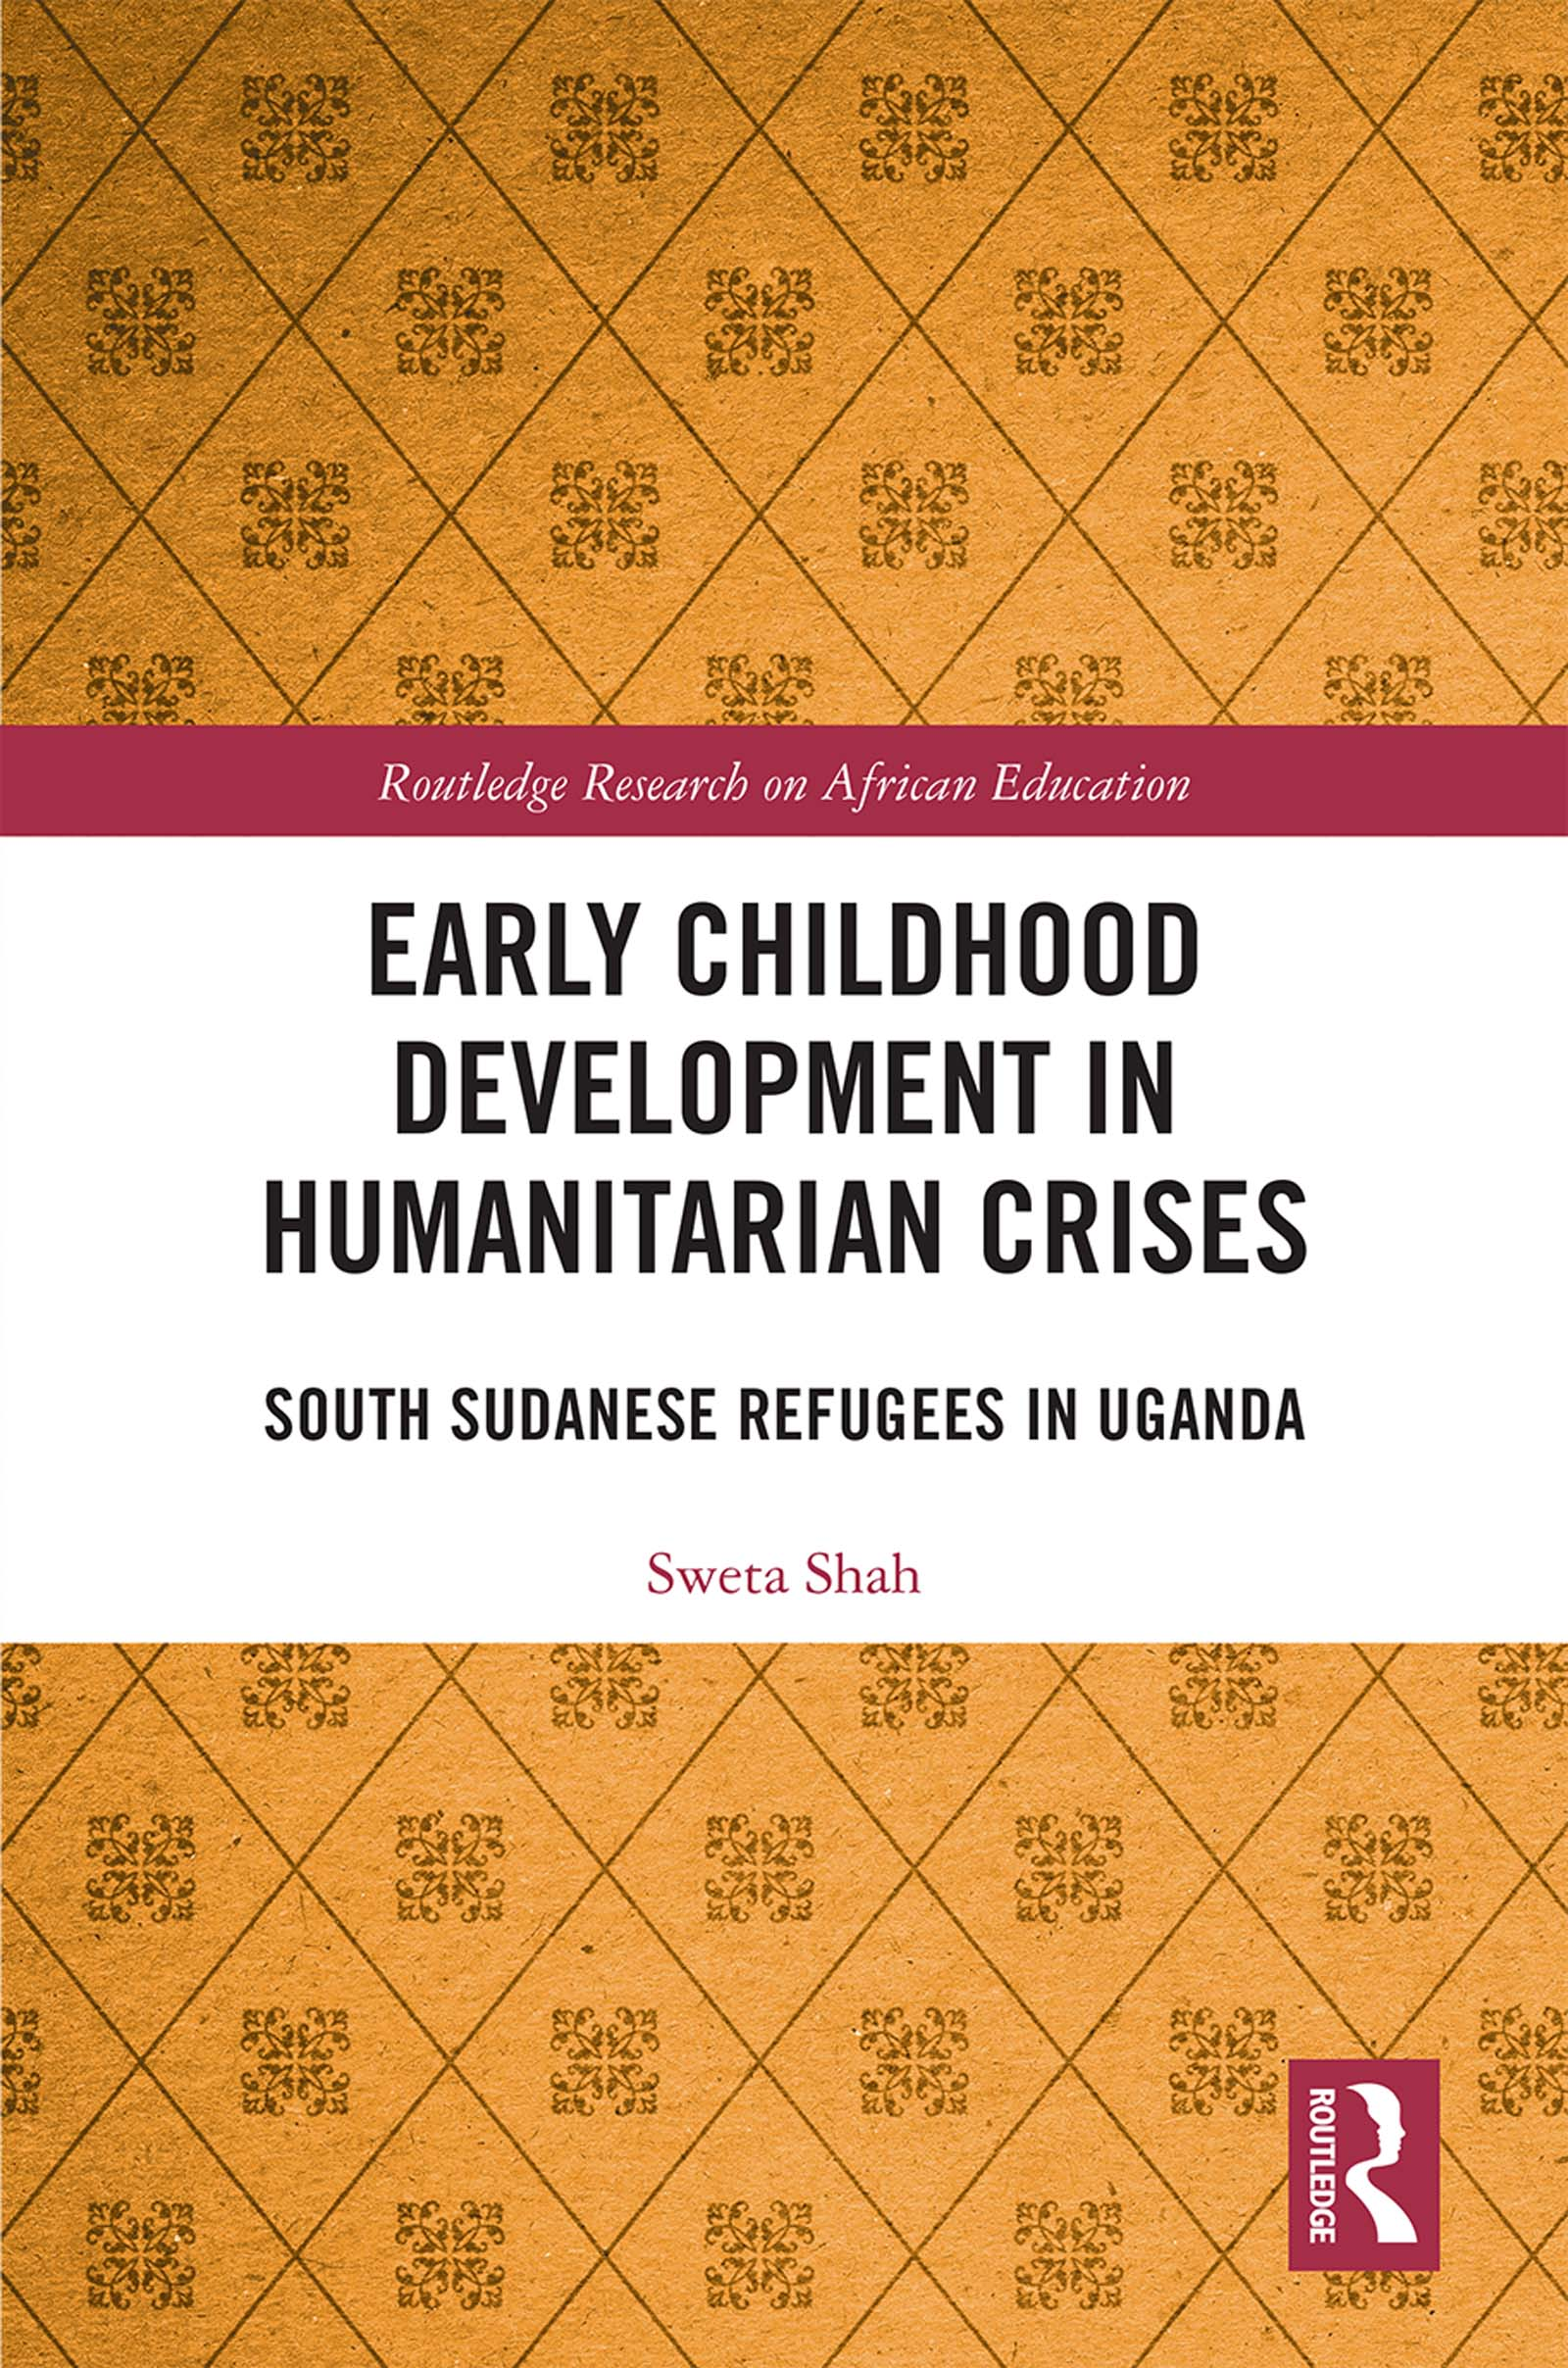 Early Childhood Development in Humanitarian Crises: South Sudanese Refugees in Uganda book cover